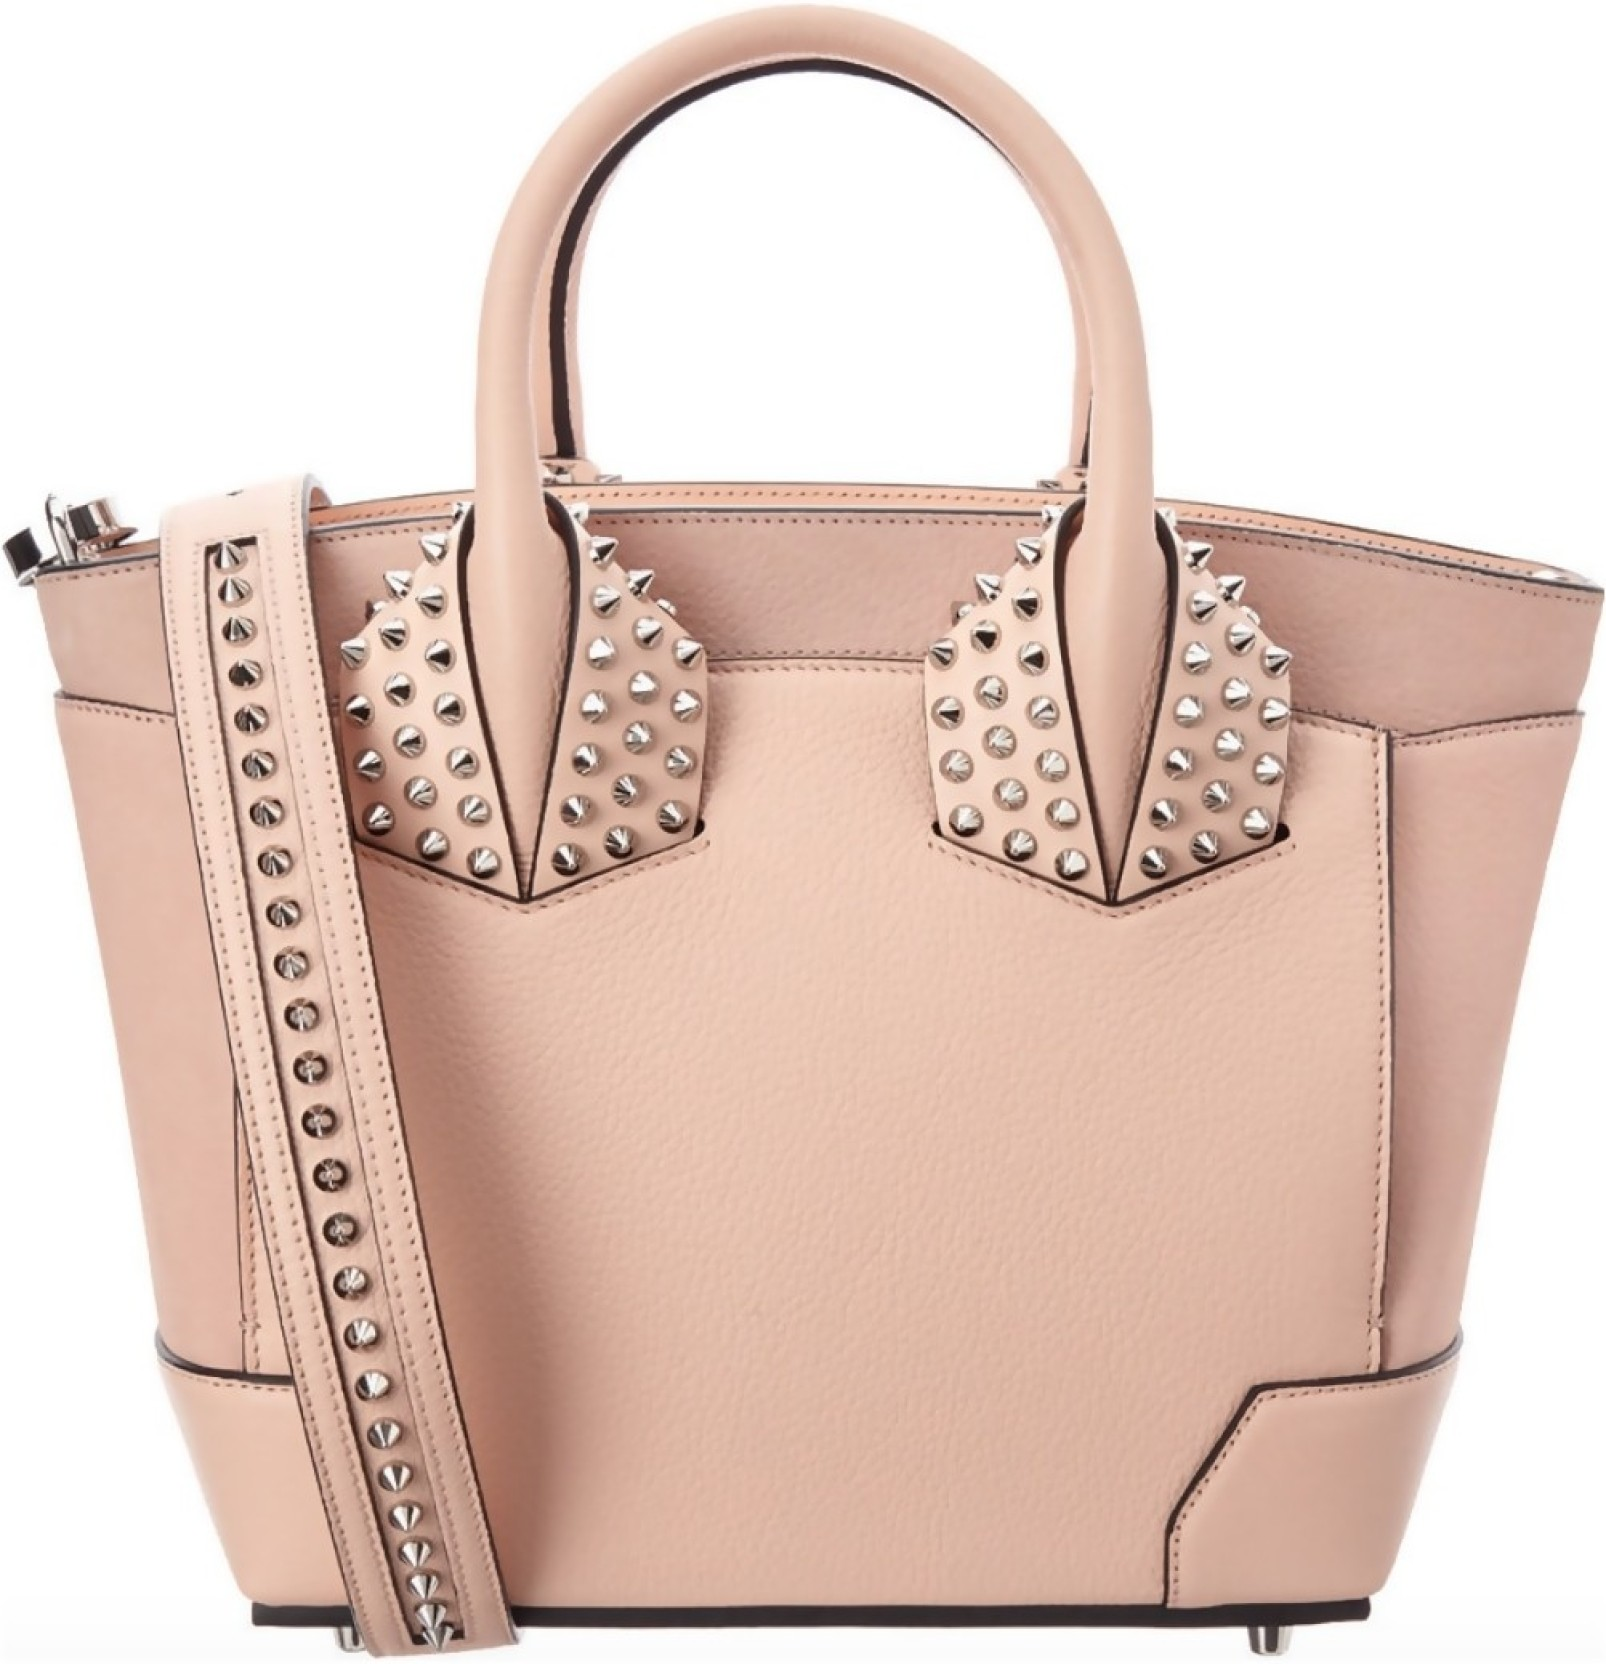 2d0a63666e2 Buy Christian Louboutin Hand-held Bag Rose Online @ Best Price in ...